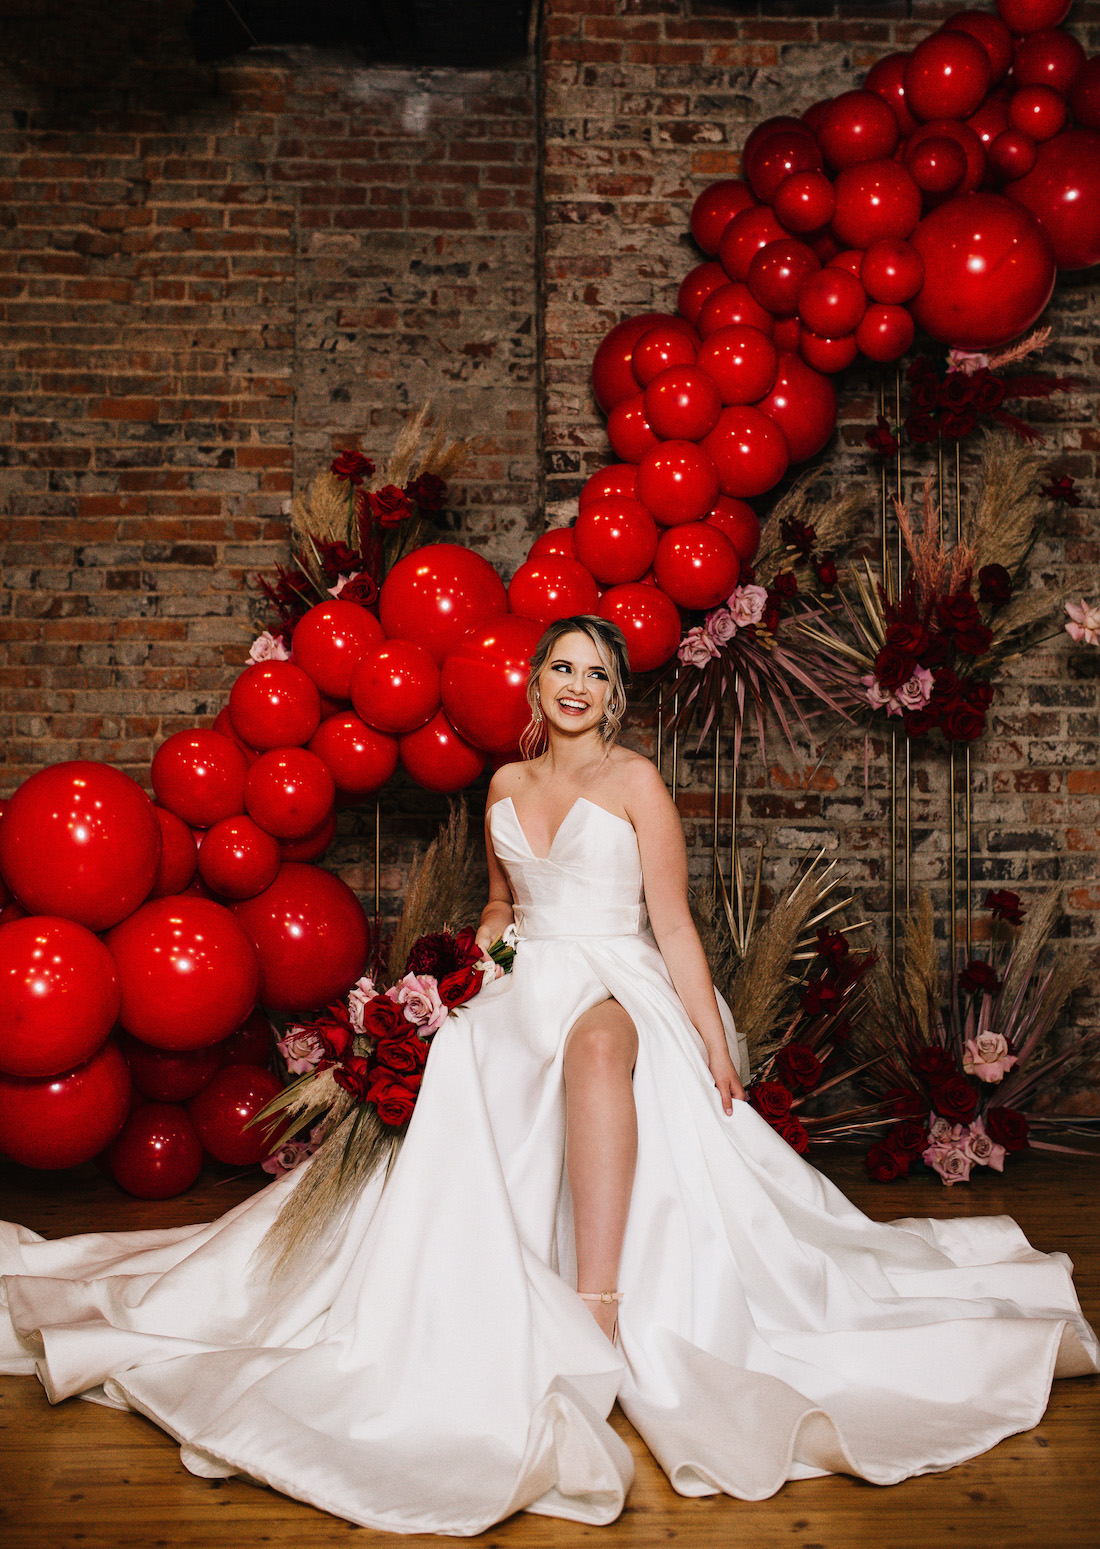 Wedding balloon inspiration, Balloons aren't just fun, they're luxury too! (Wedding balloon inspiration)